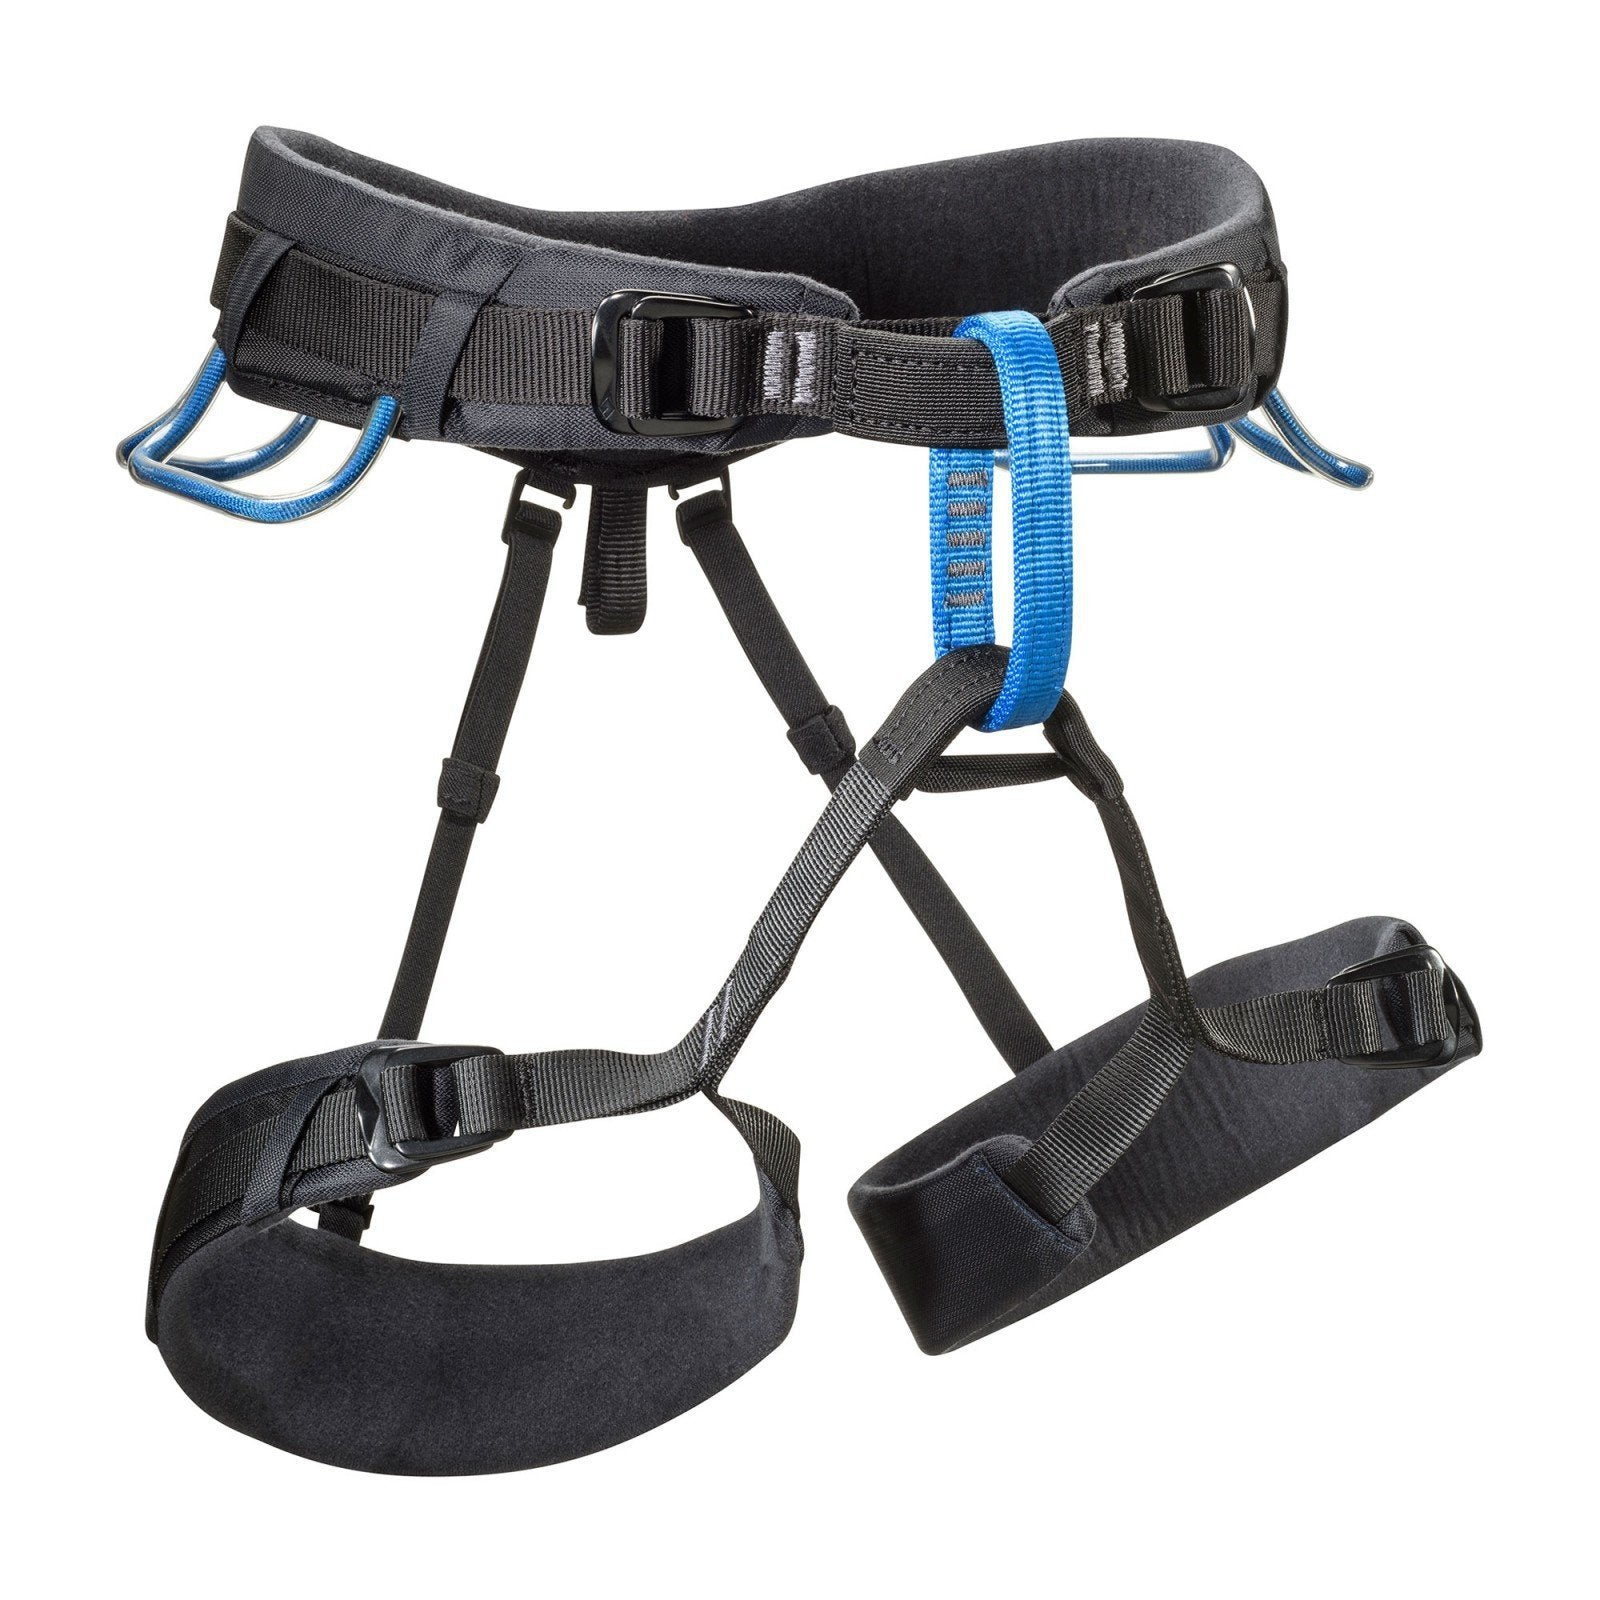 Black Diamond Momentum DS Harness, front/side view in black and blue colours